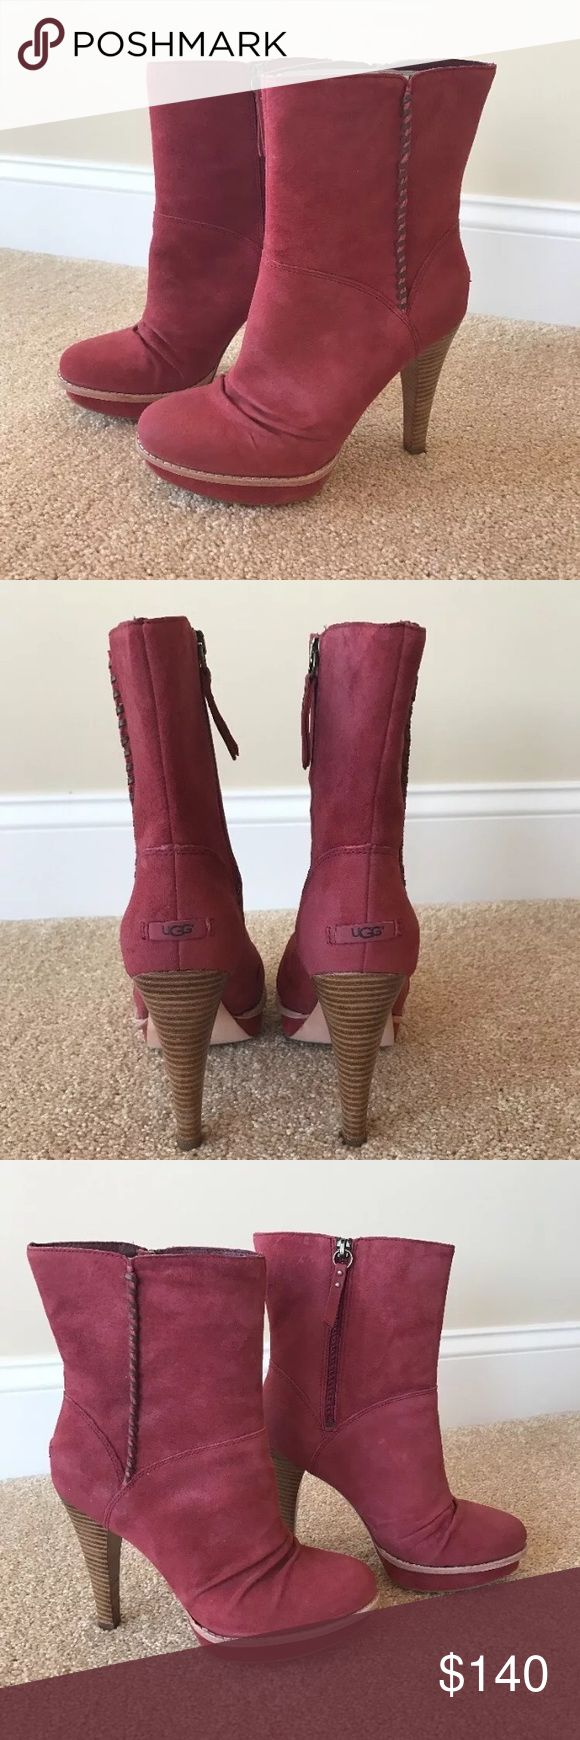 Women's Ugg Bianca boot size 8 Women's Ugg Bianca boot size 8.  New without box. Ugg Shoes Heeled Boots